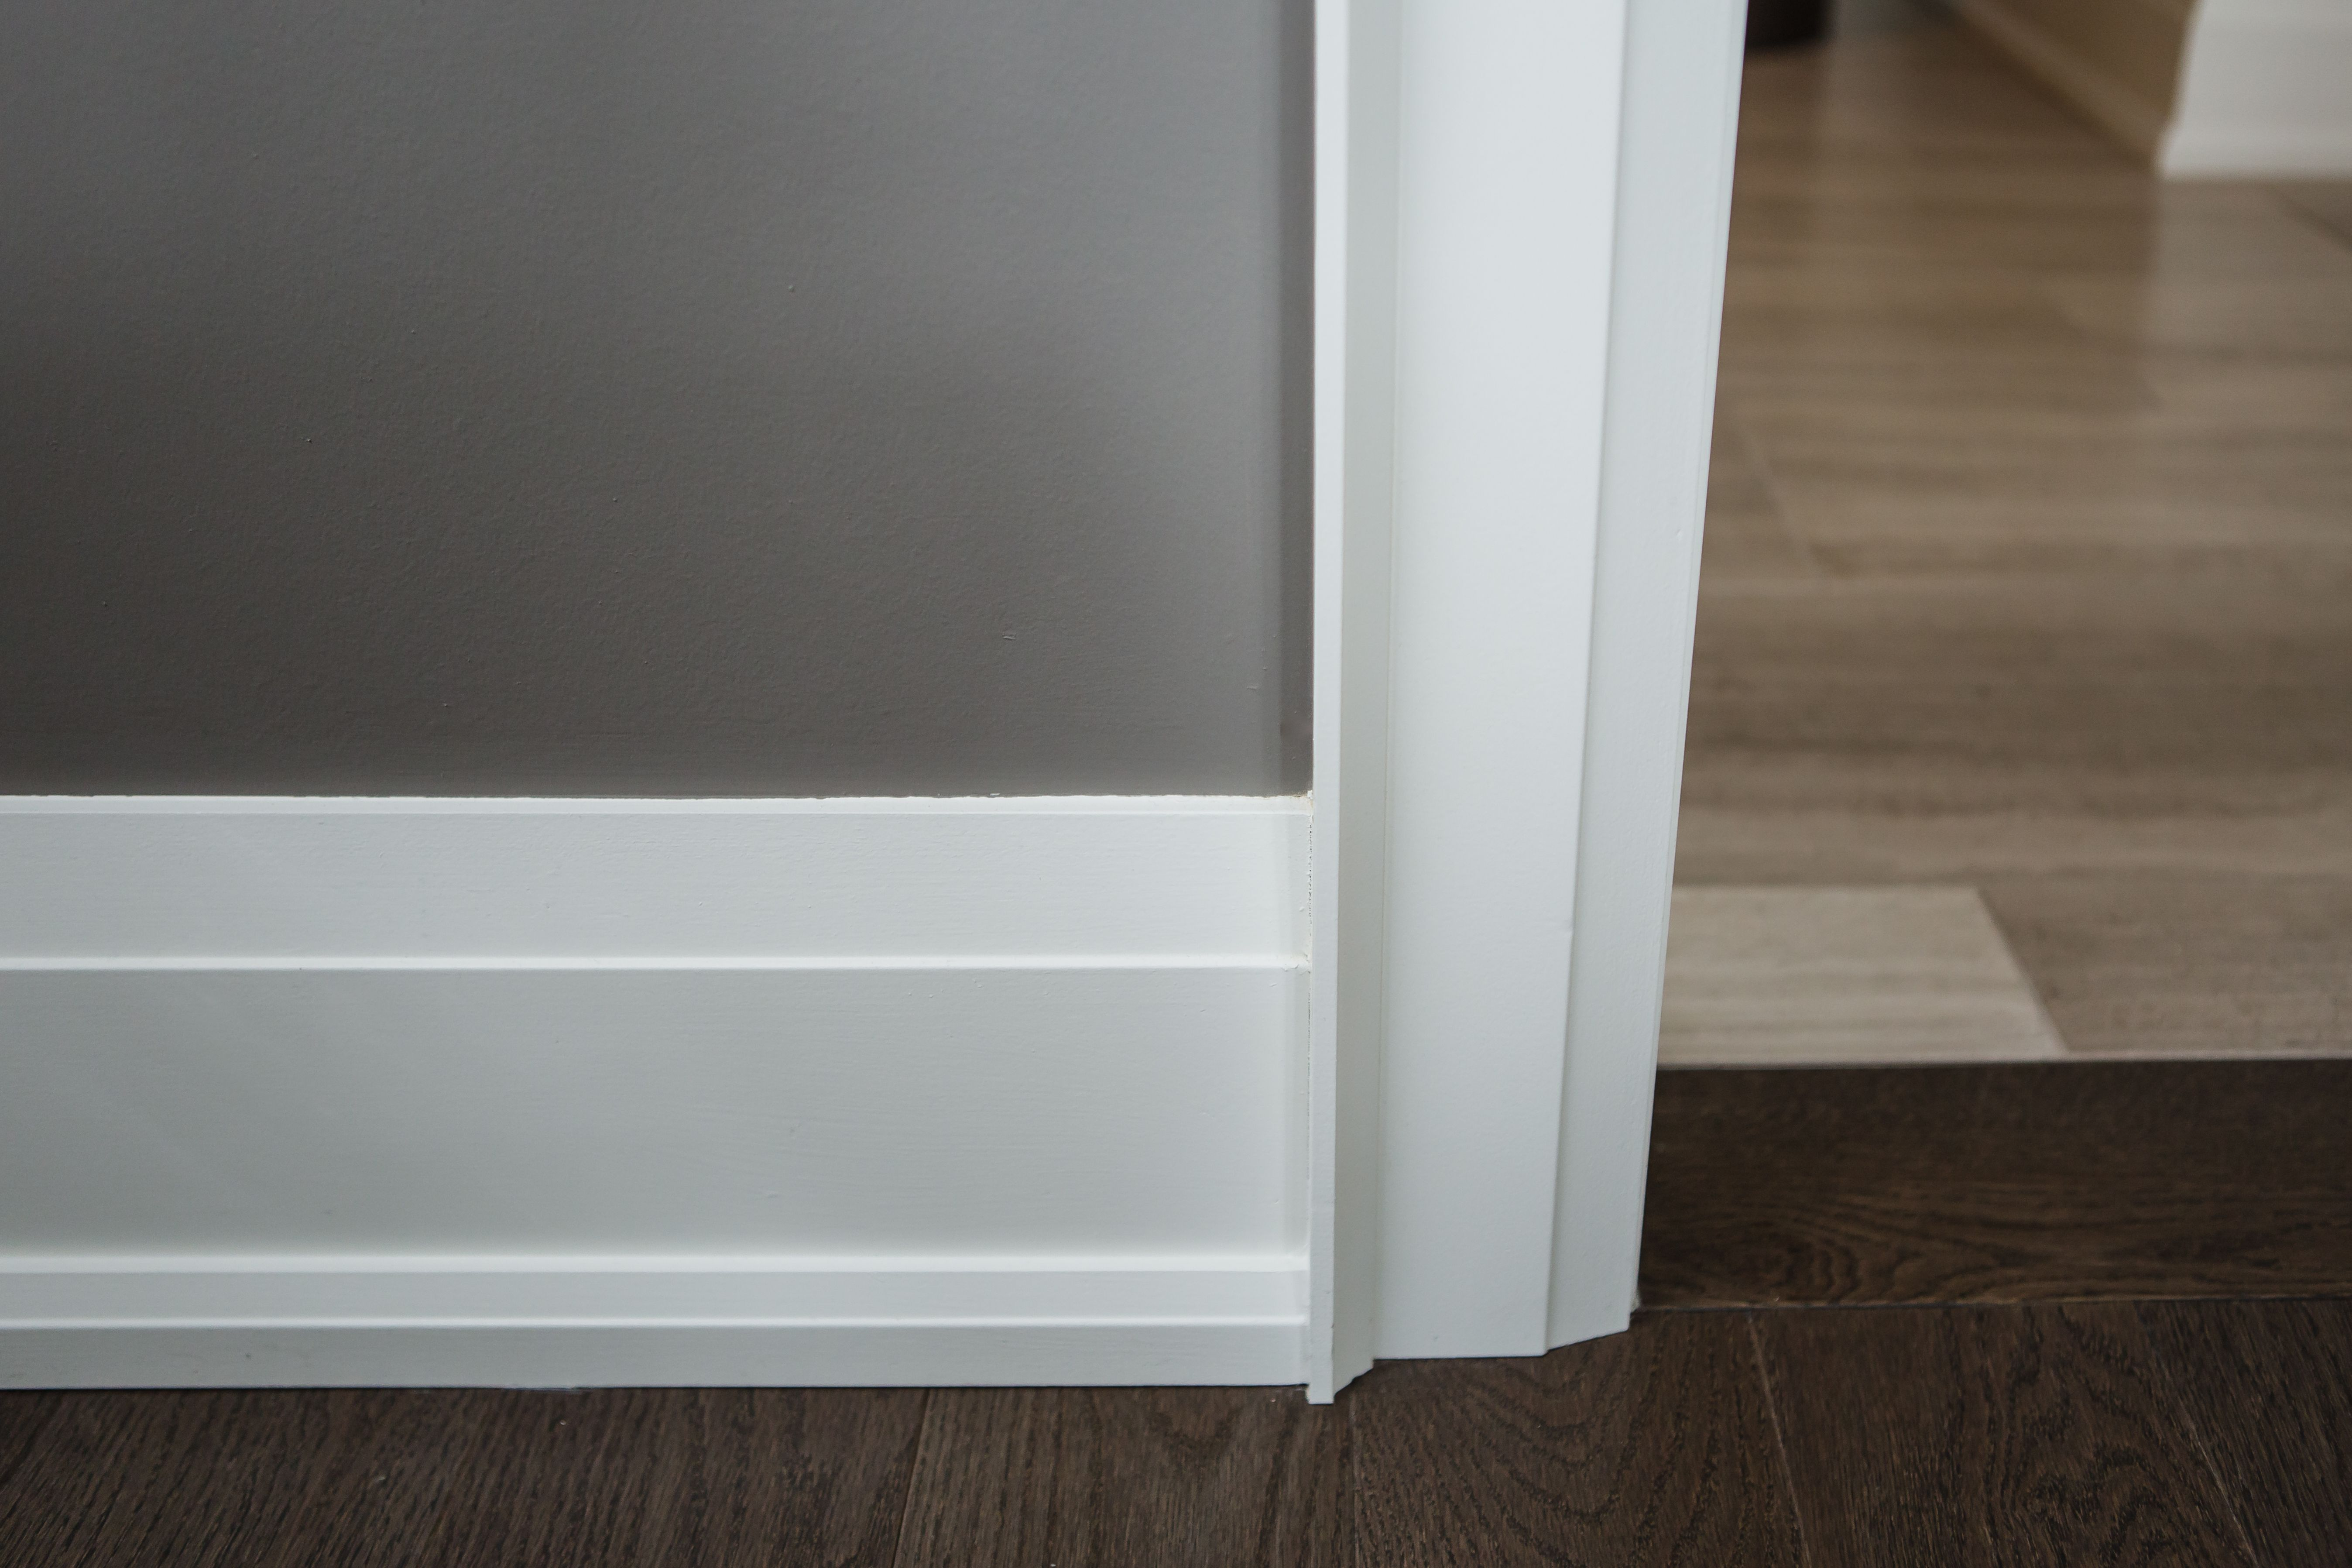 Contemporary Trim Baseboard Trim Moldings And Trim Baseboards